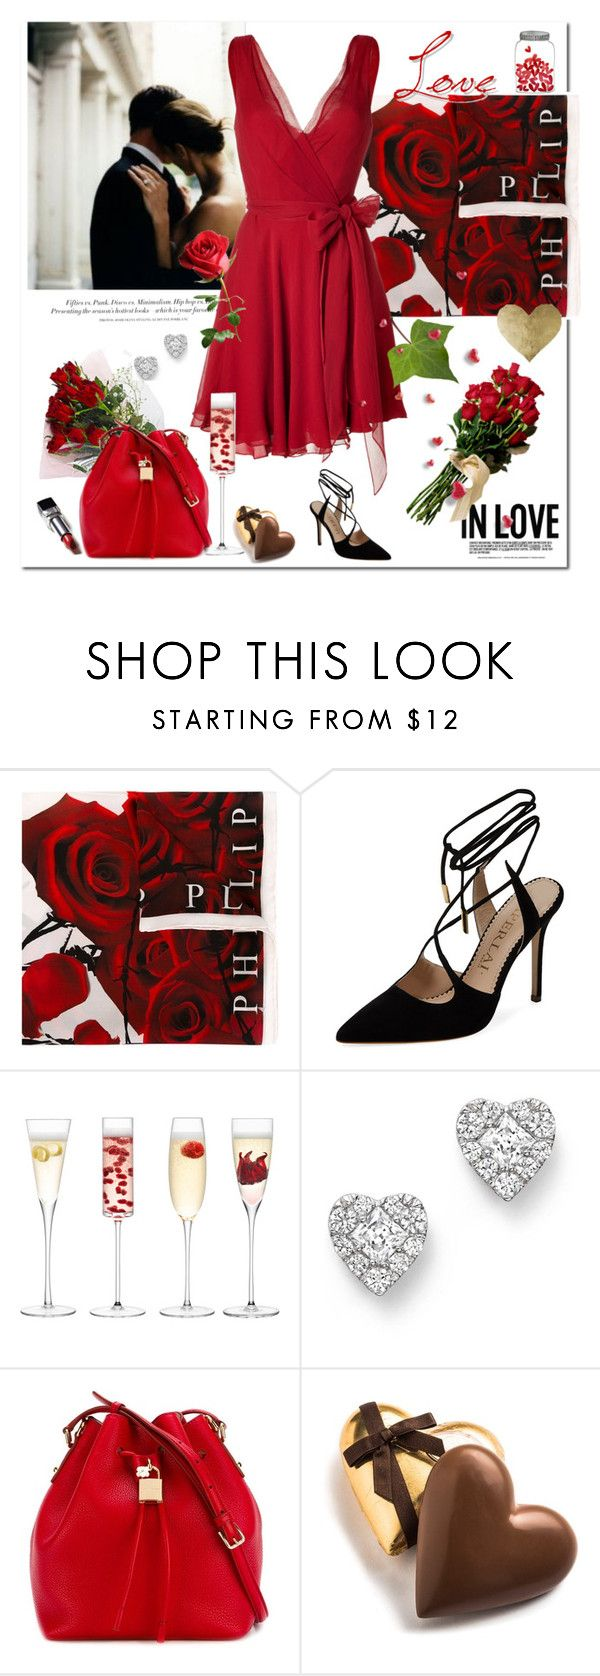 """For Love"" by rever-de-paris ❤ liked on Polyvore featuring H&M, Philipp Plein, Aperlaï, LSA International, Bloomingdale's, Dolce&Gabbana, Oliver Gal Artist Co., women's clothing, women and female"